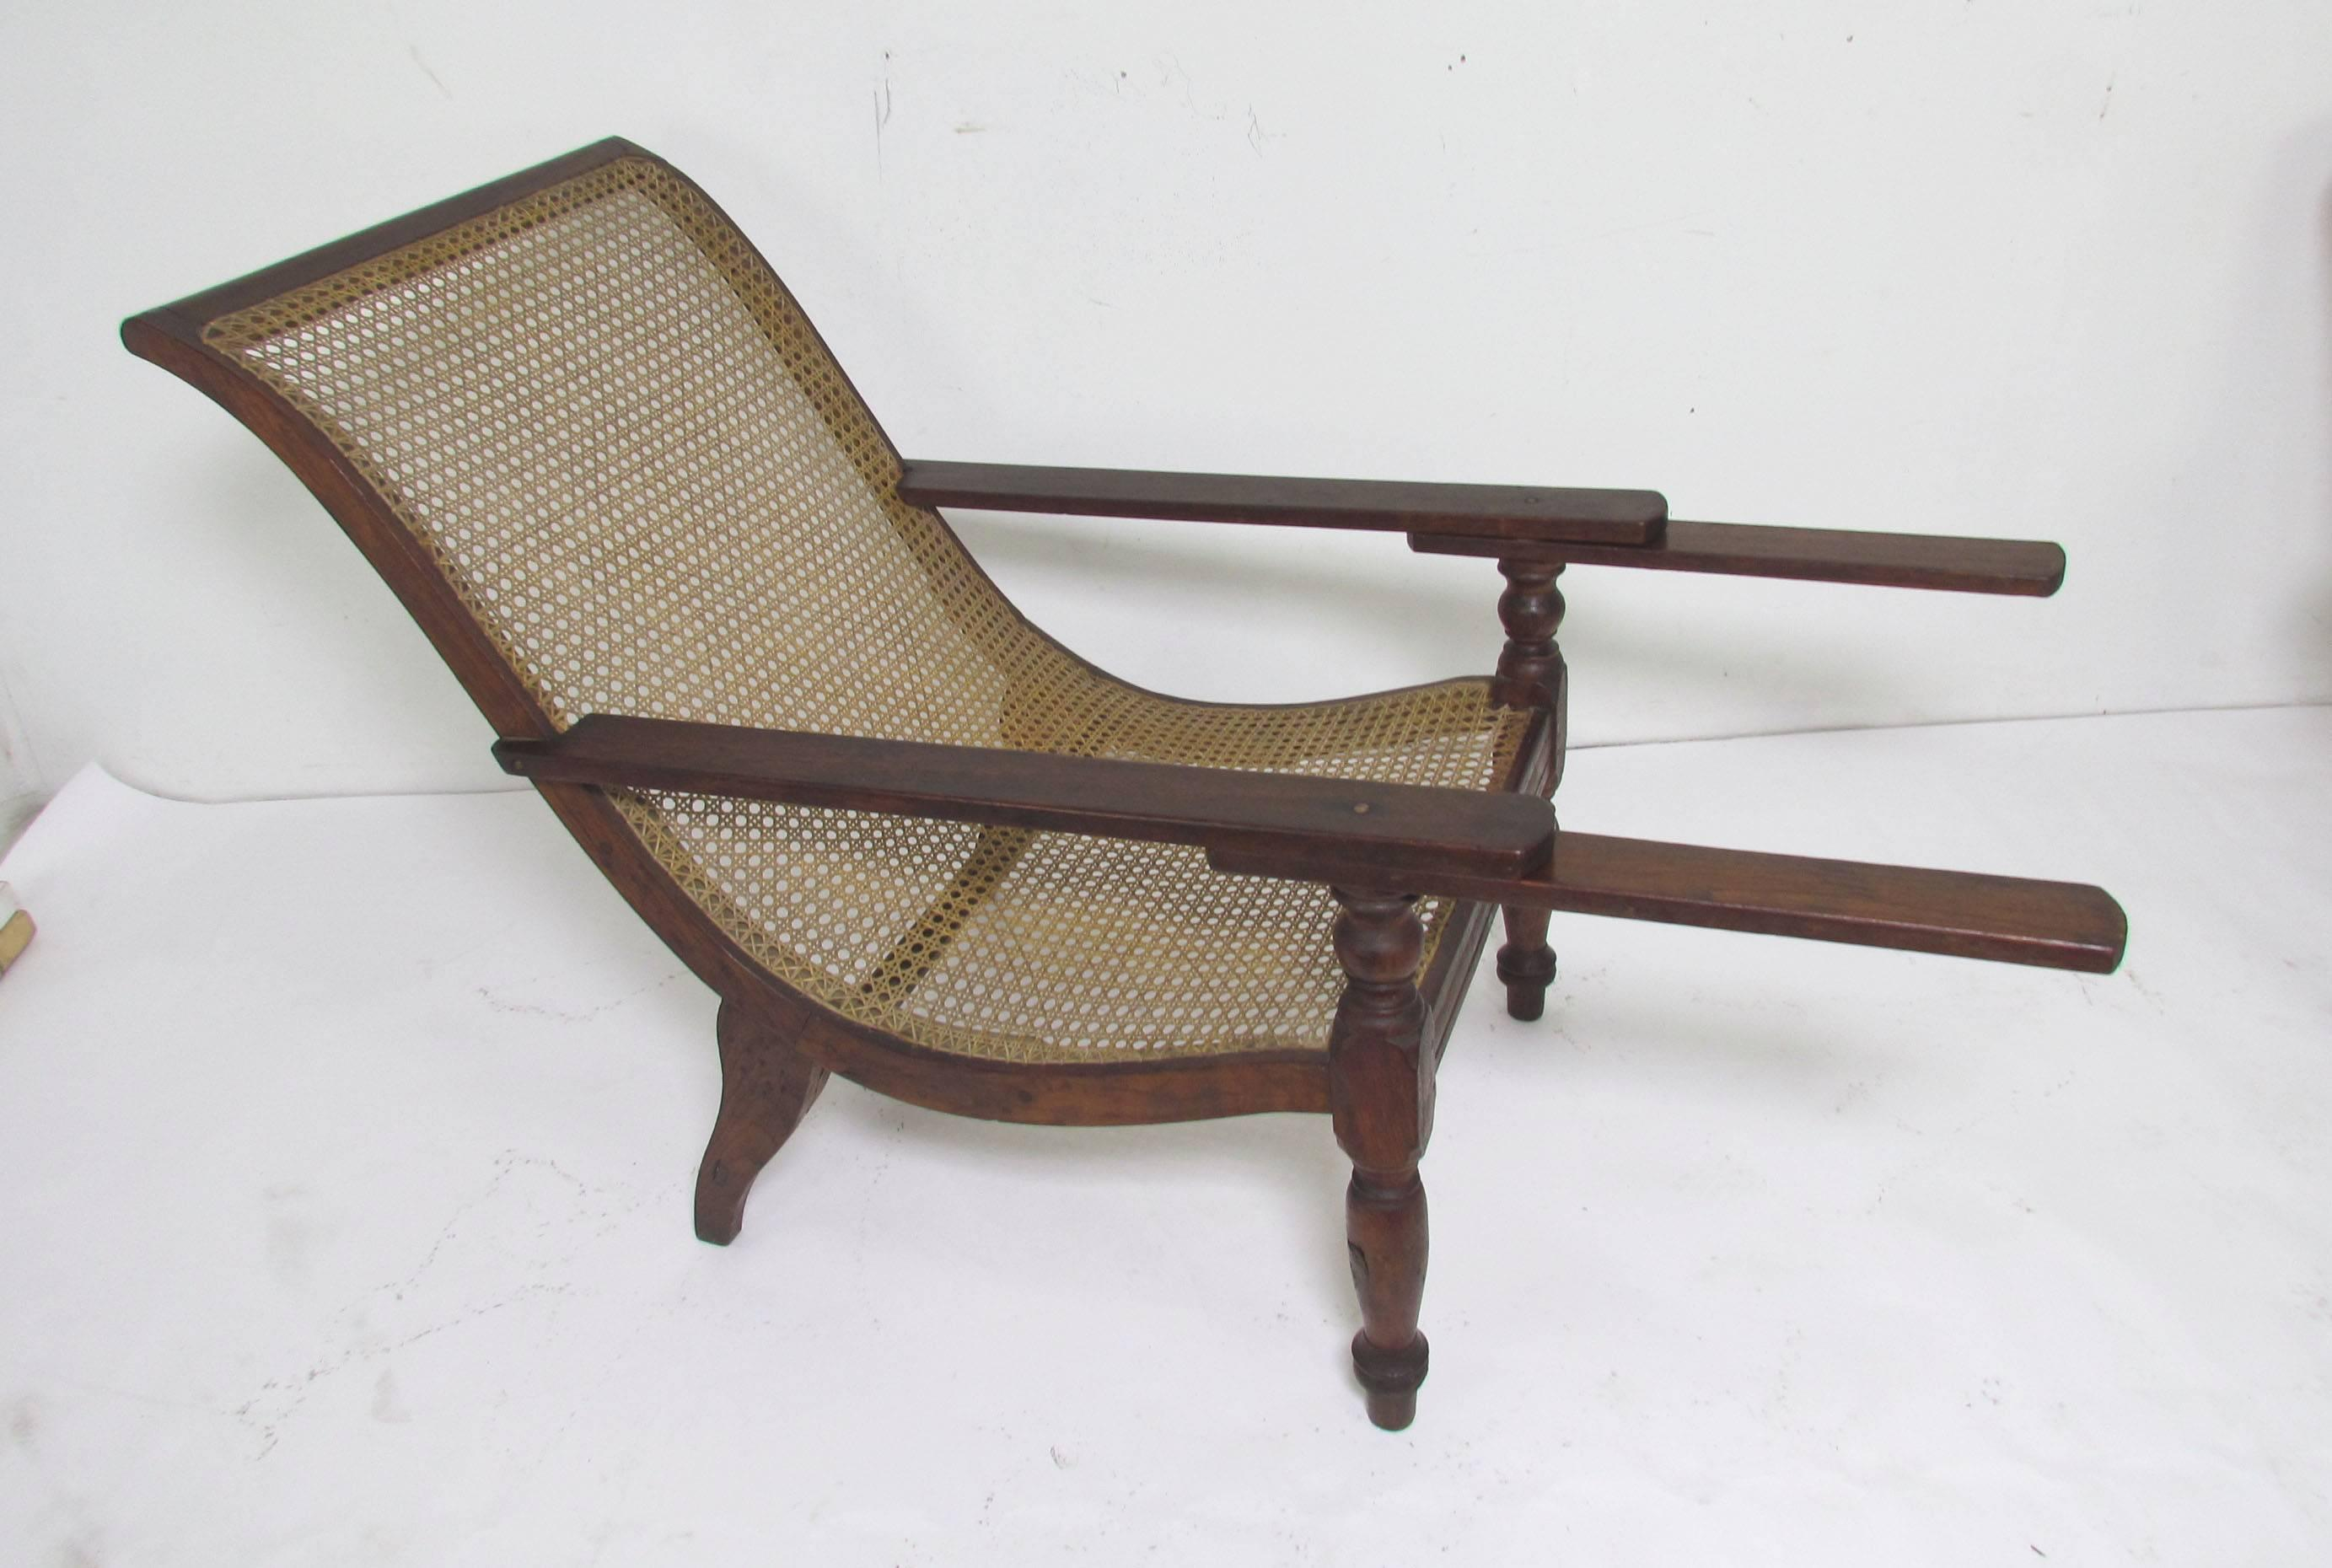 Genial Antique Paddle Arm British Colonial Plantation Lounge Chairs For Sale At  1stdibs